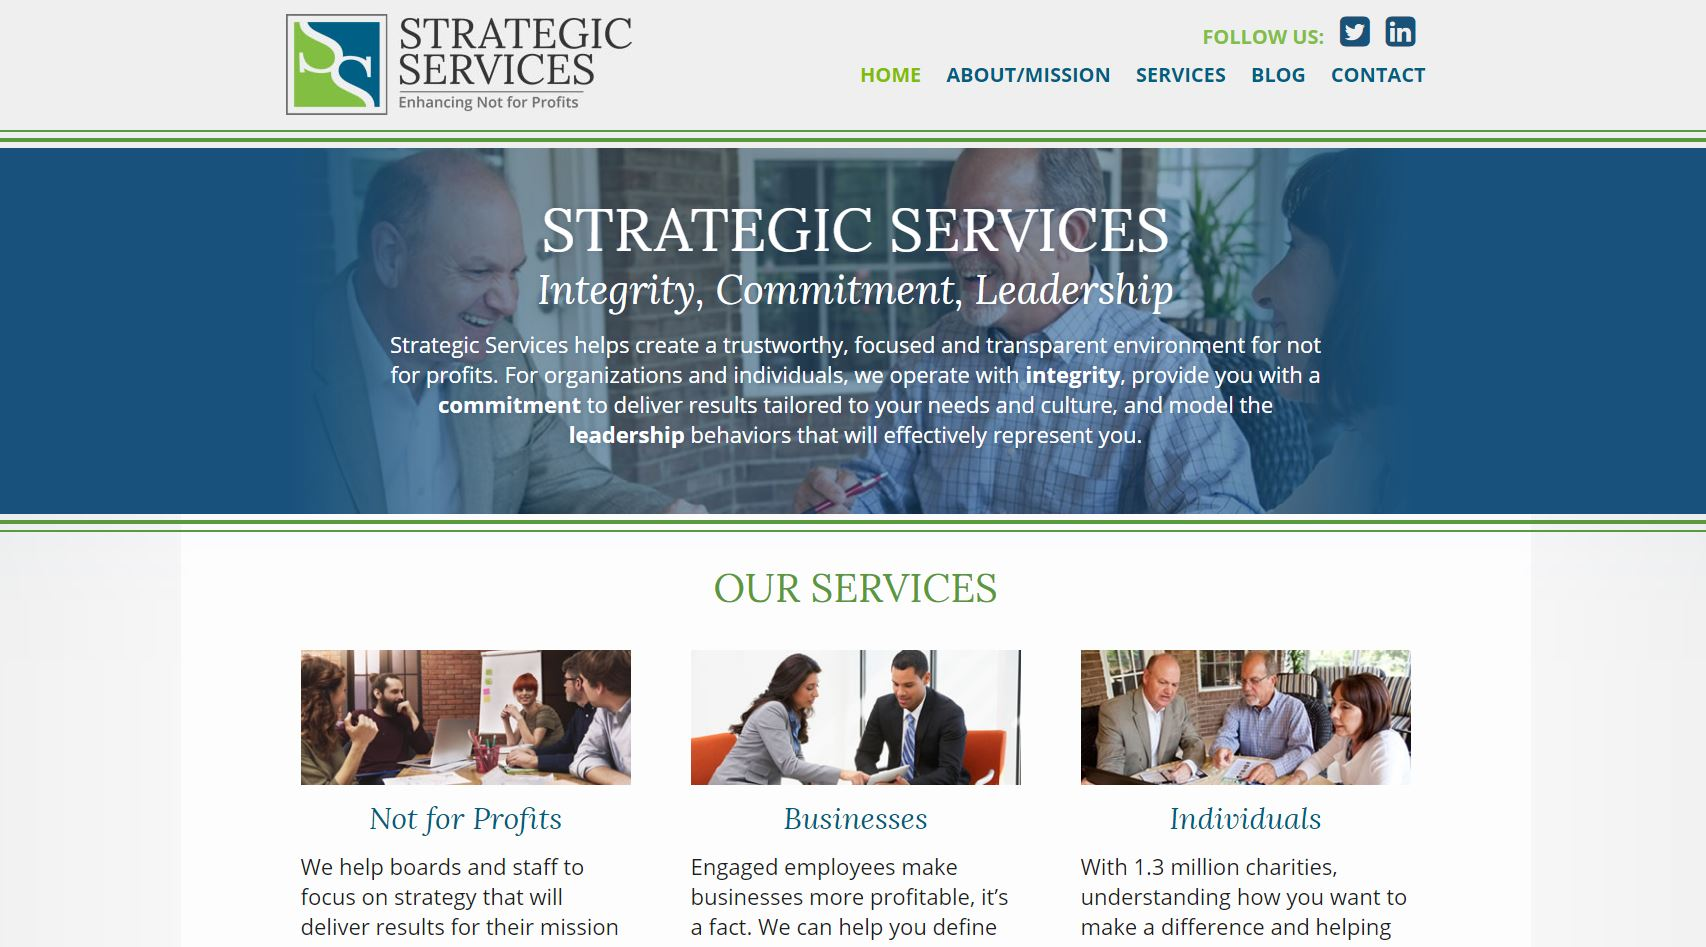 Strategic Services New Website - MayeCreate Design